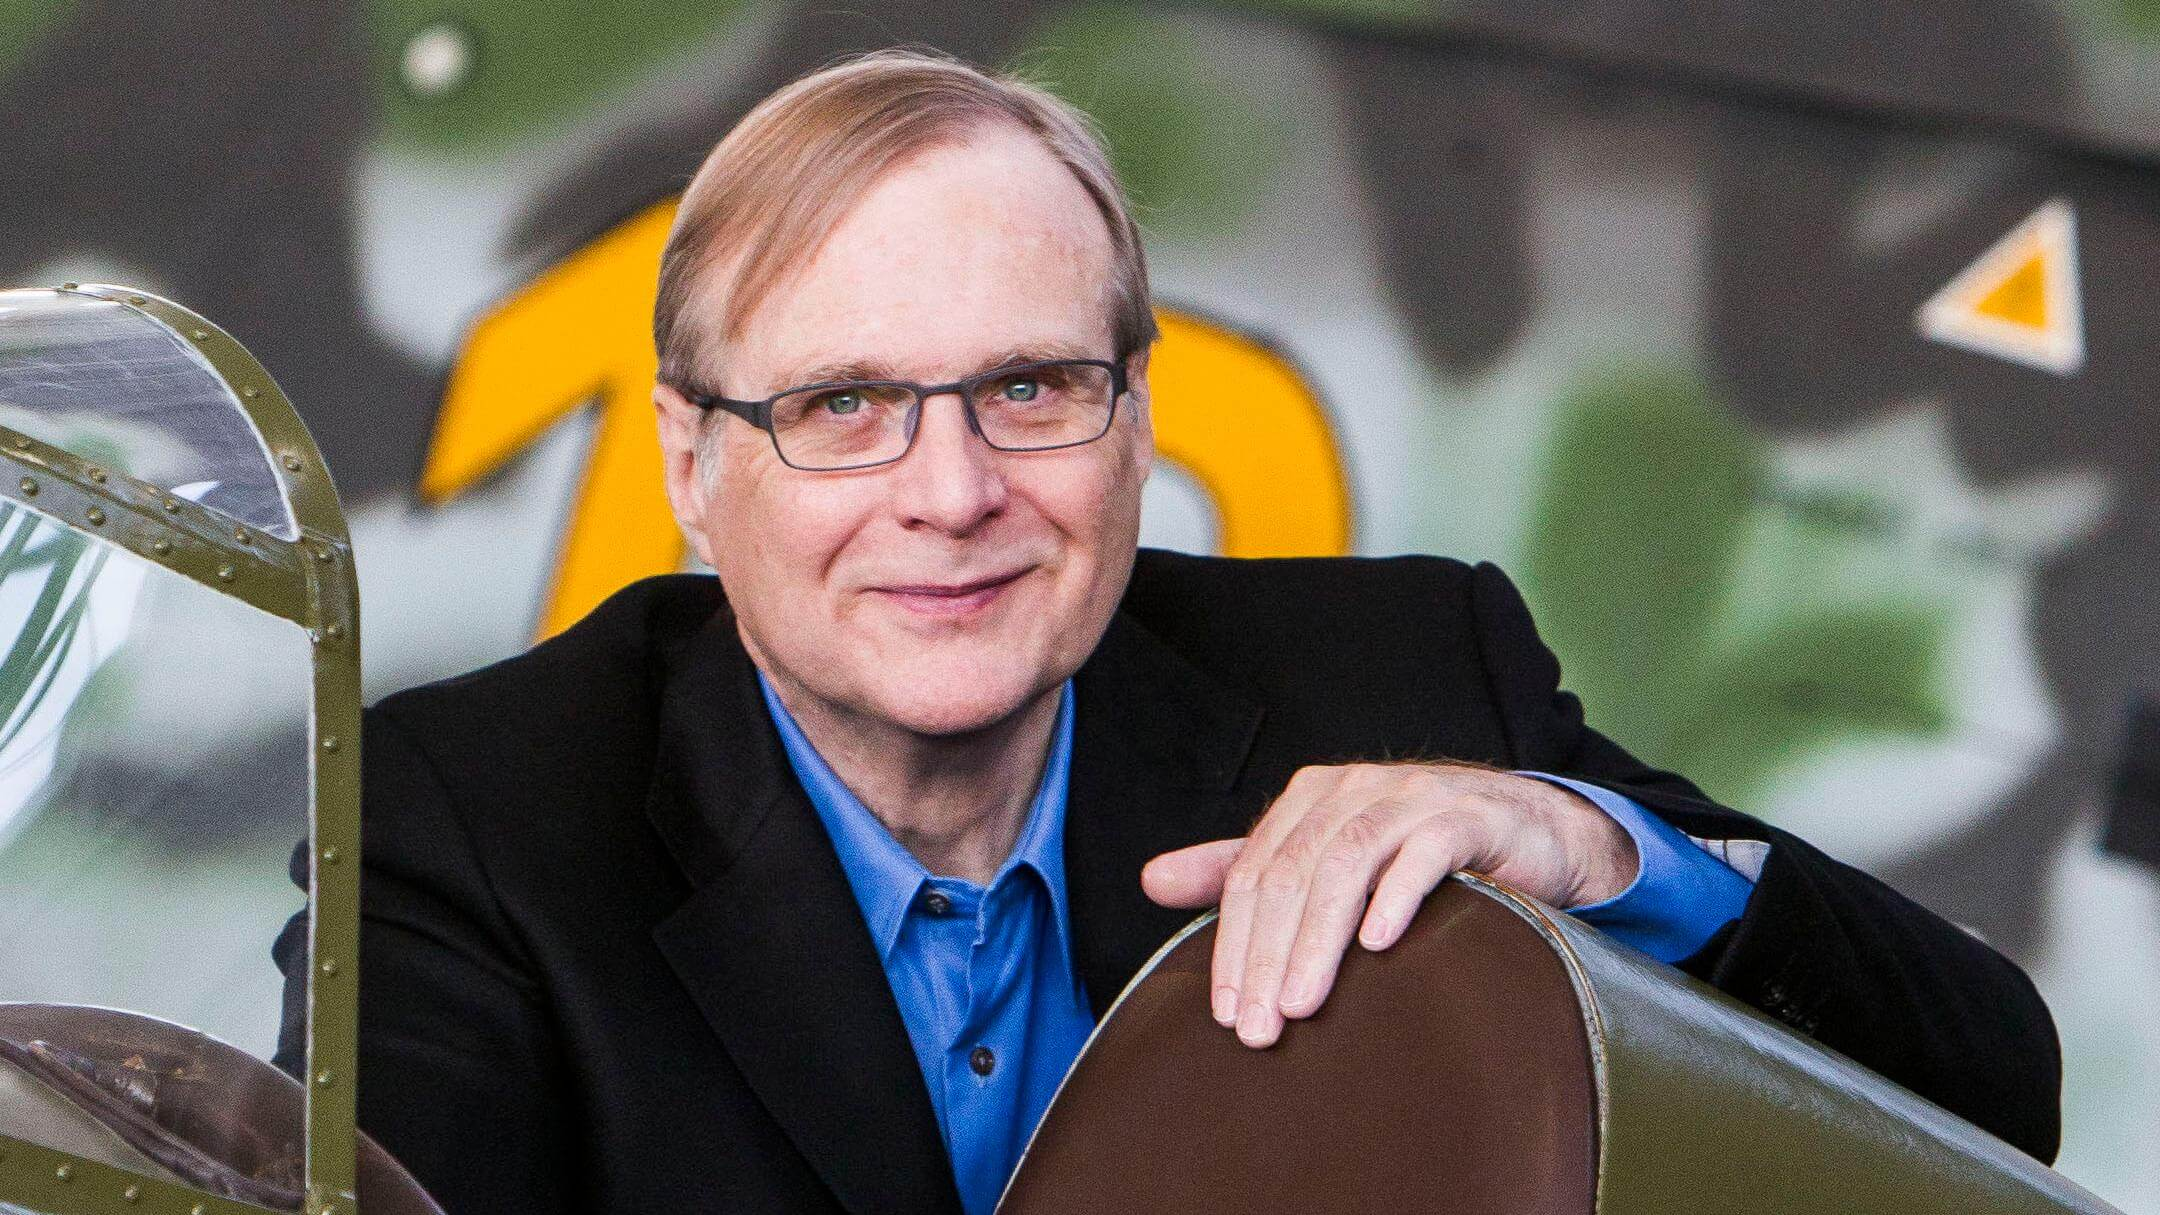 Co-founder of Microsoft, Paul Allen, Dead at 65